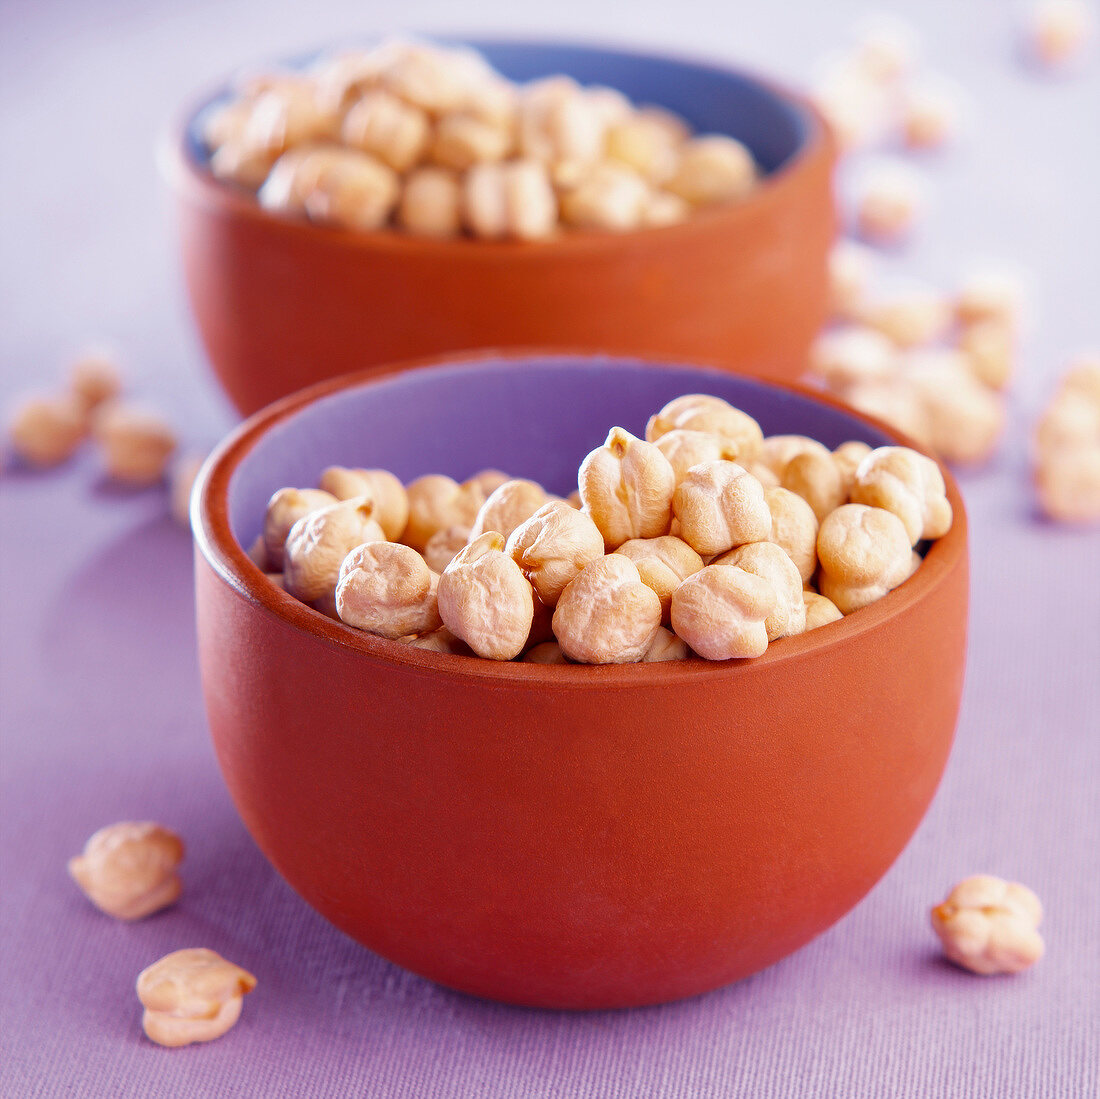 Bowls of chickpeas